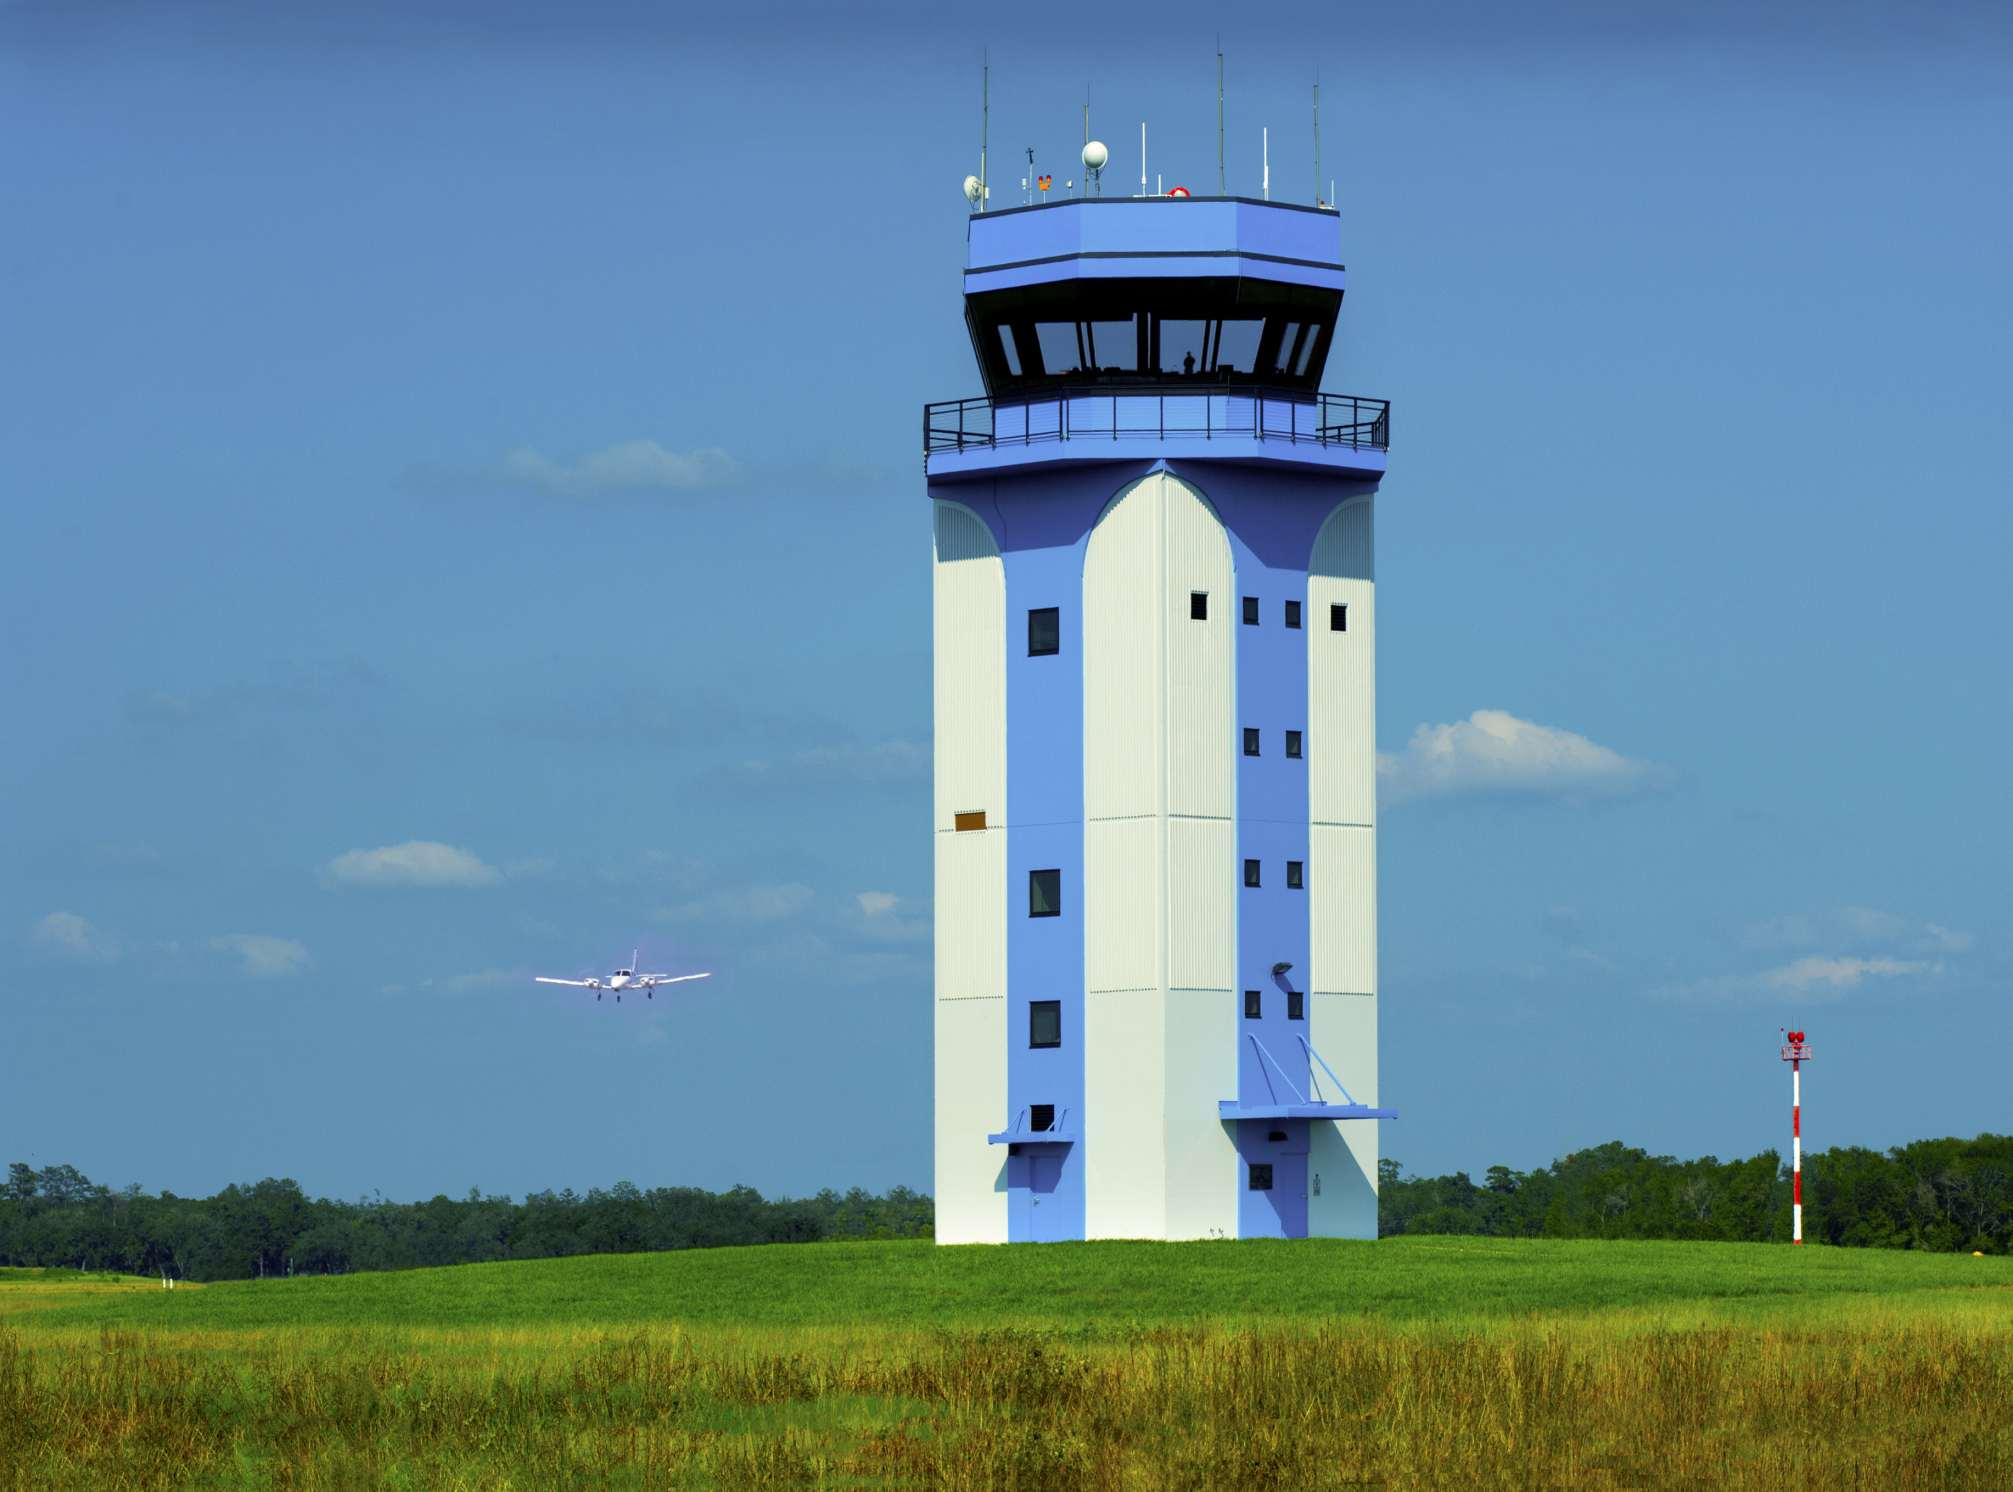 Airport control tower and a commuter plane preparing to land on the runway.